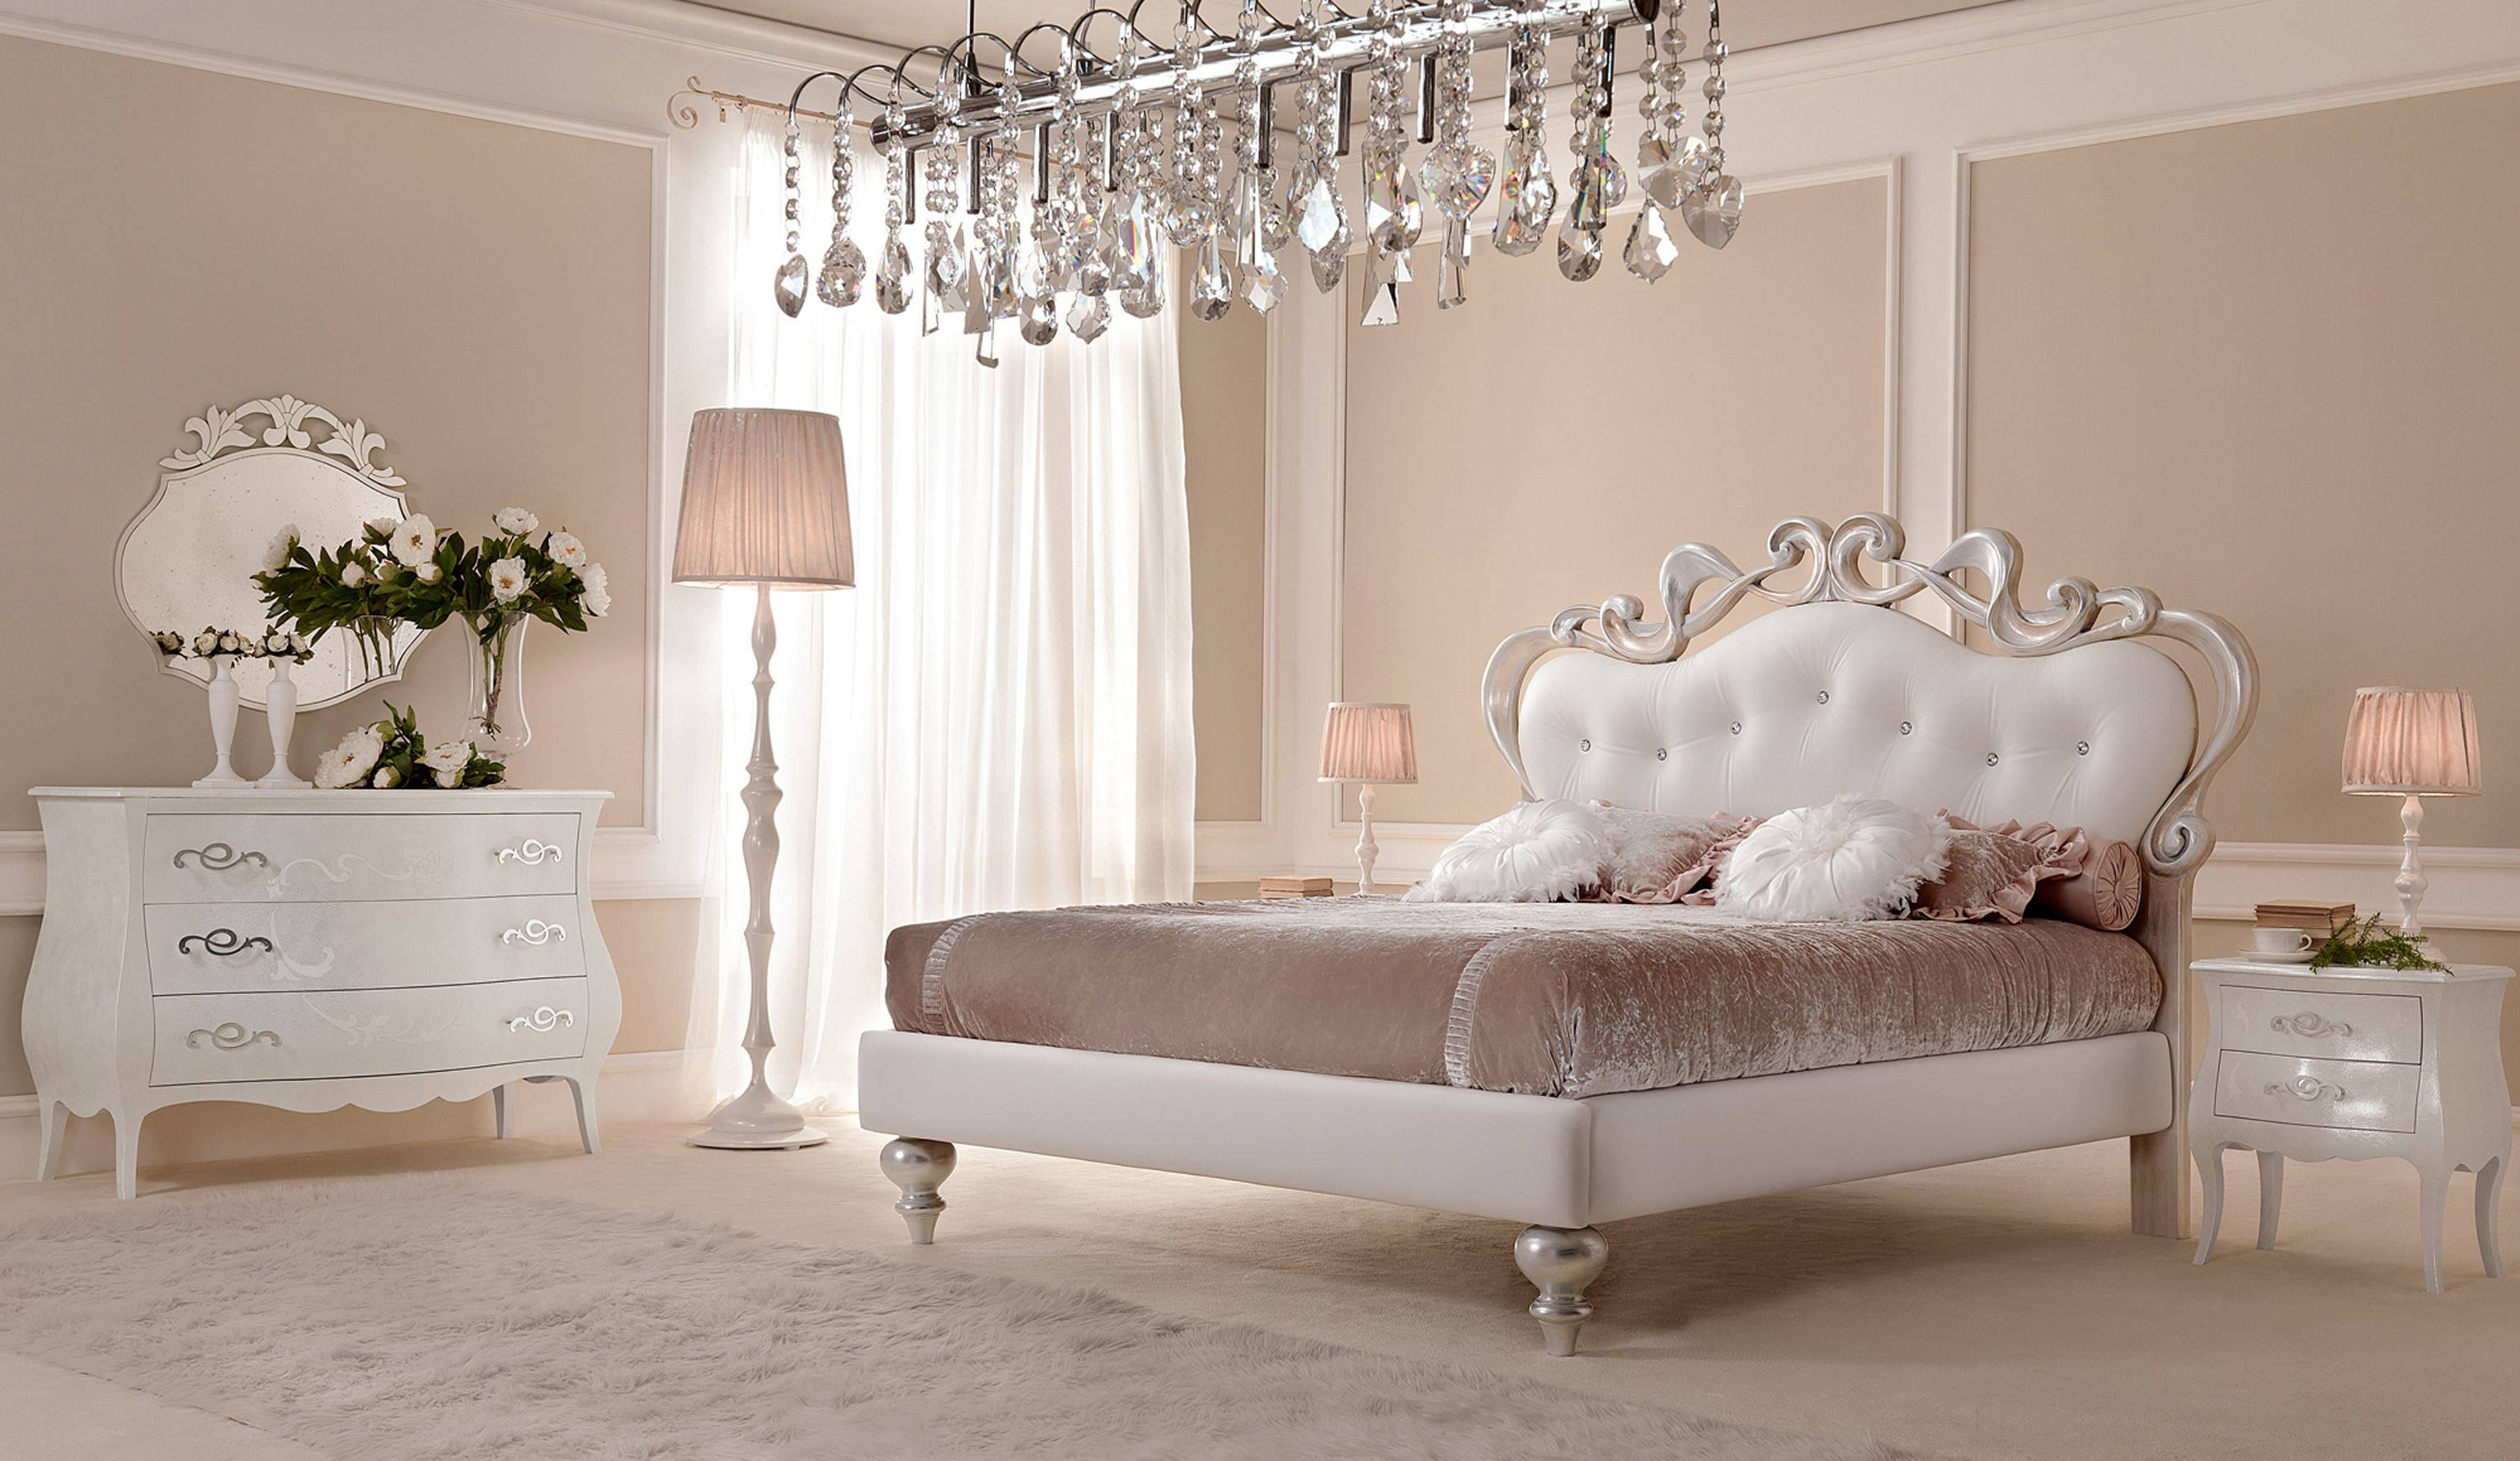 Gotha Mobili ~ Upholstered leather double bed butterfly glamour collection by